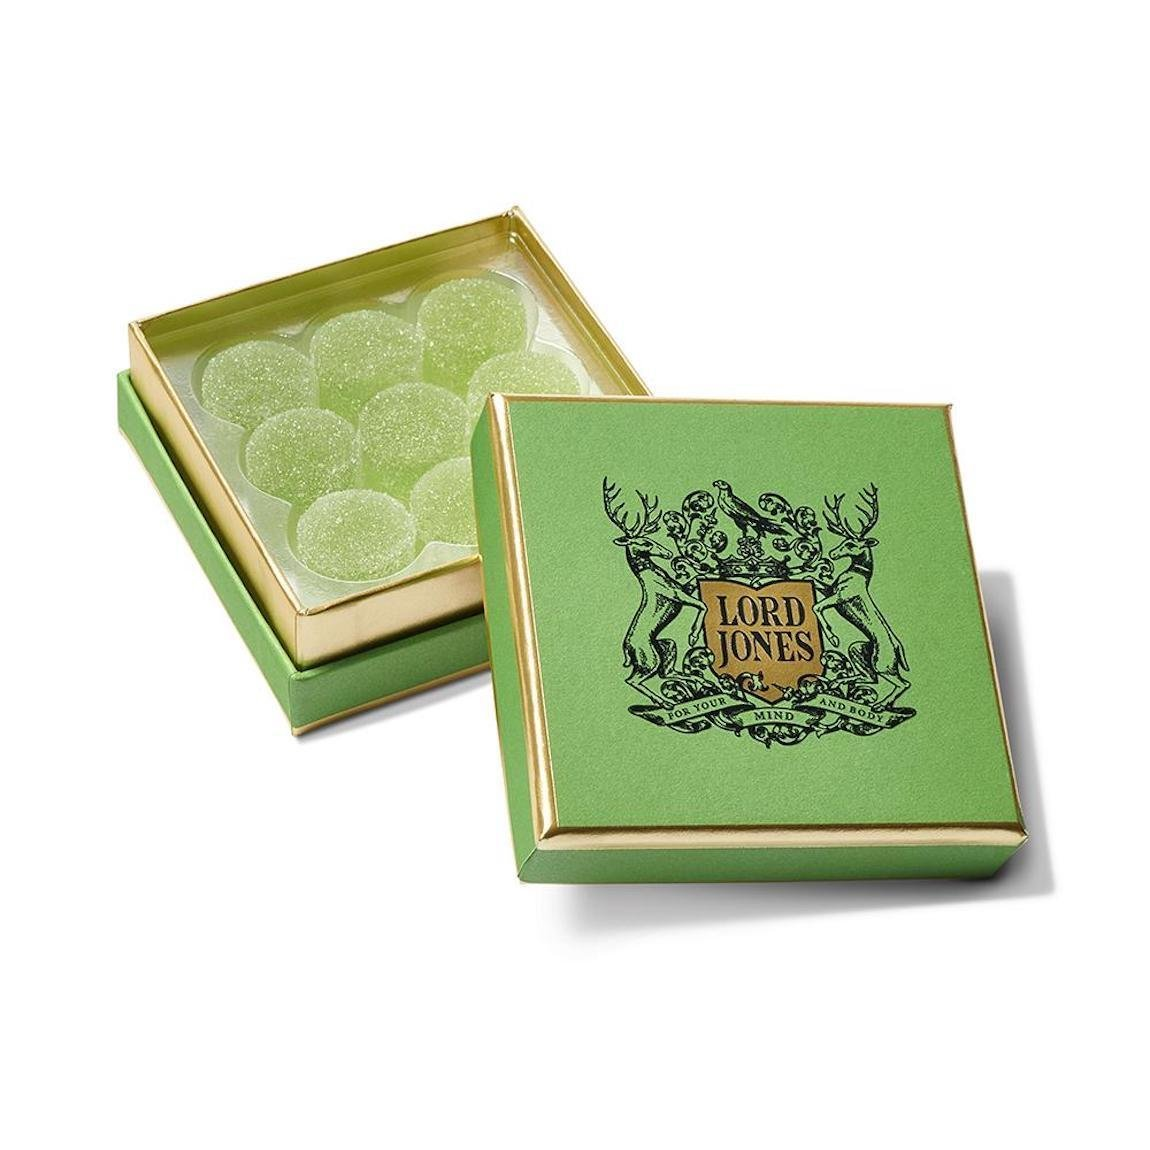 Lord Jones All Natural Old Fashioned Gumdrops Green Apple product swatch.